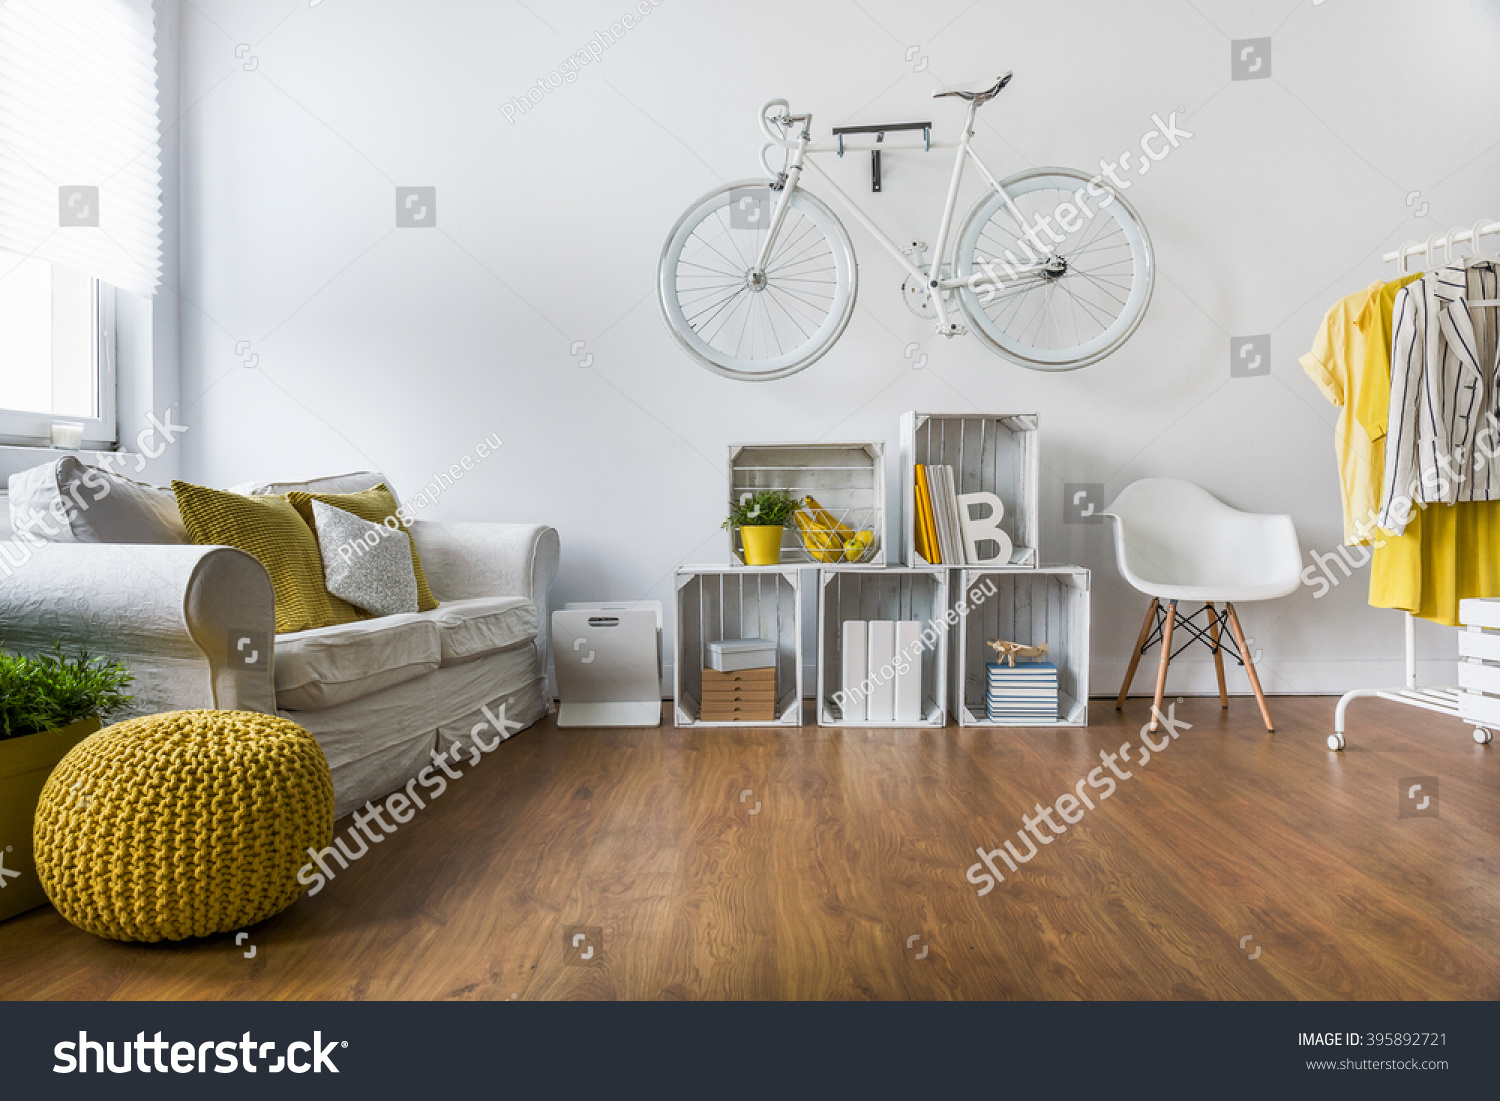 stock photo wooden parquet in big living room with comfortable white sofa and vintage decorations 395892721jpg